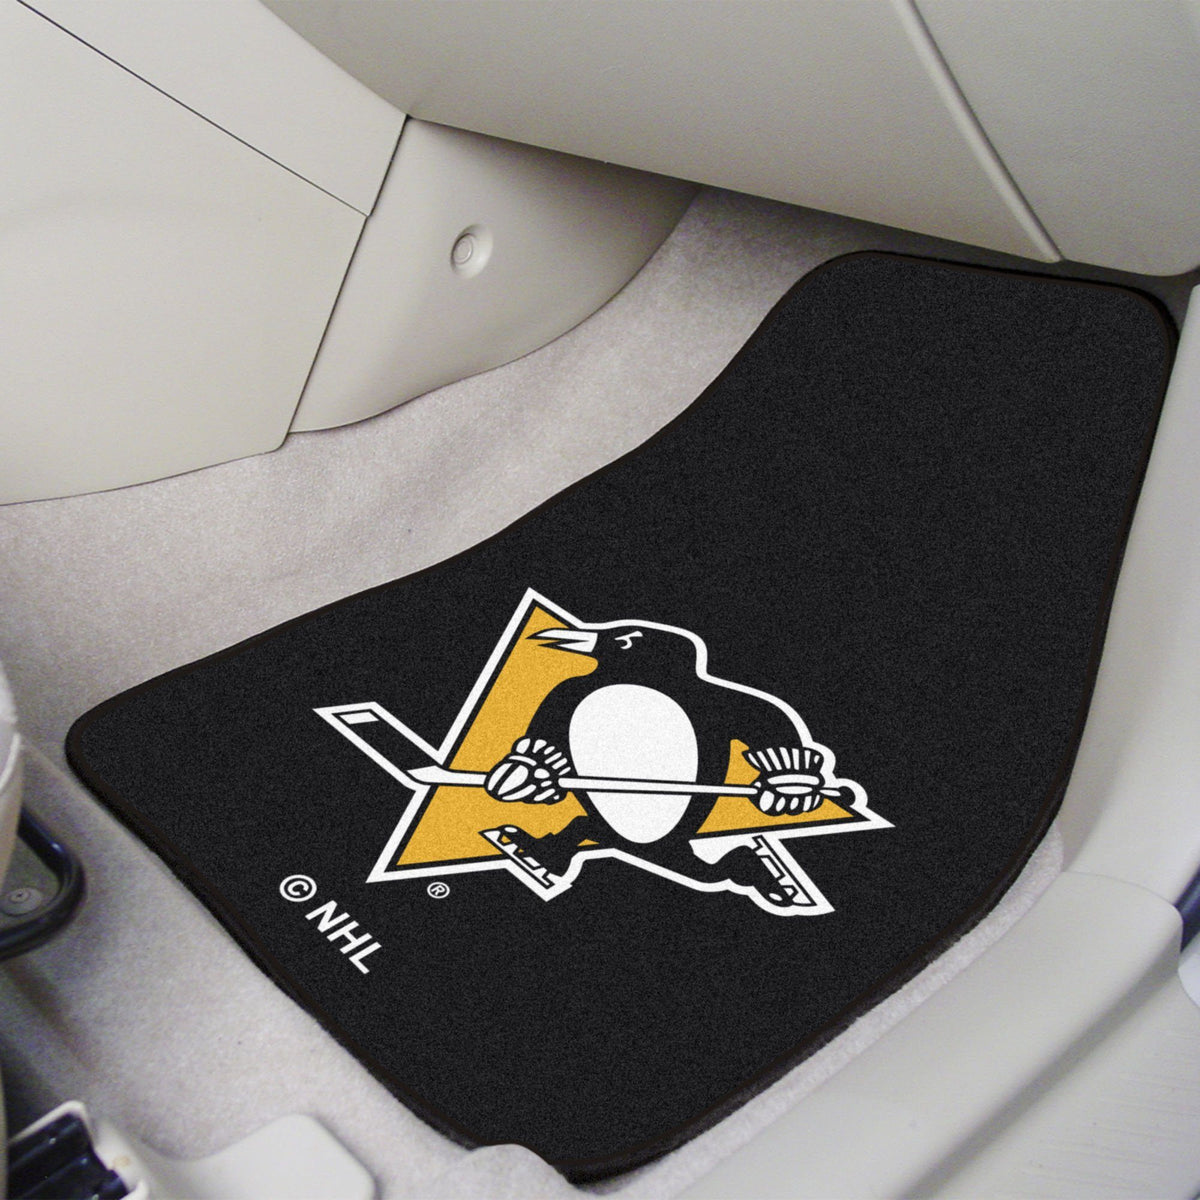 NHL - Carpet Car Mat, 2-Piece Set NHL Mats, Front Car Mats, 2-pc Carpet Car Mat Set, NHL, Auto Fan Mats Pittsburgh Penguins